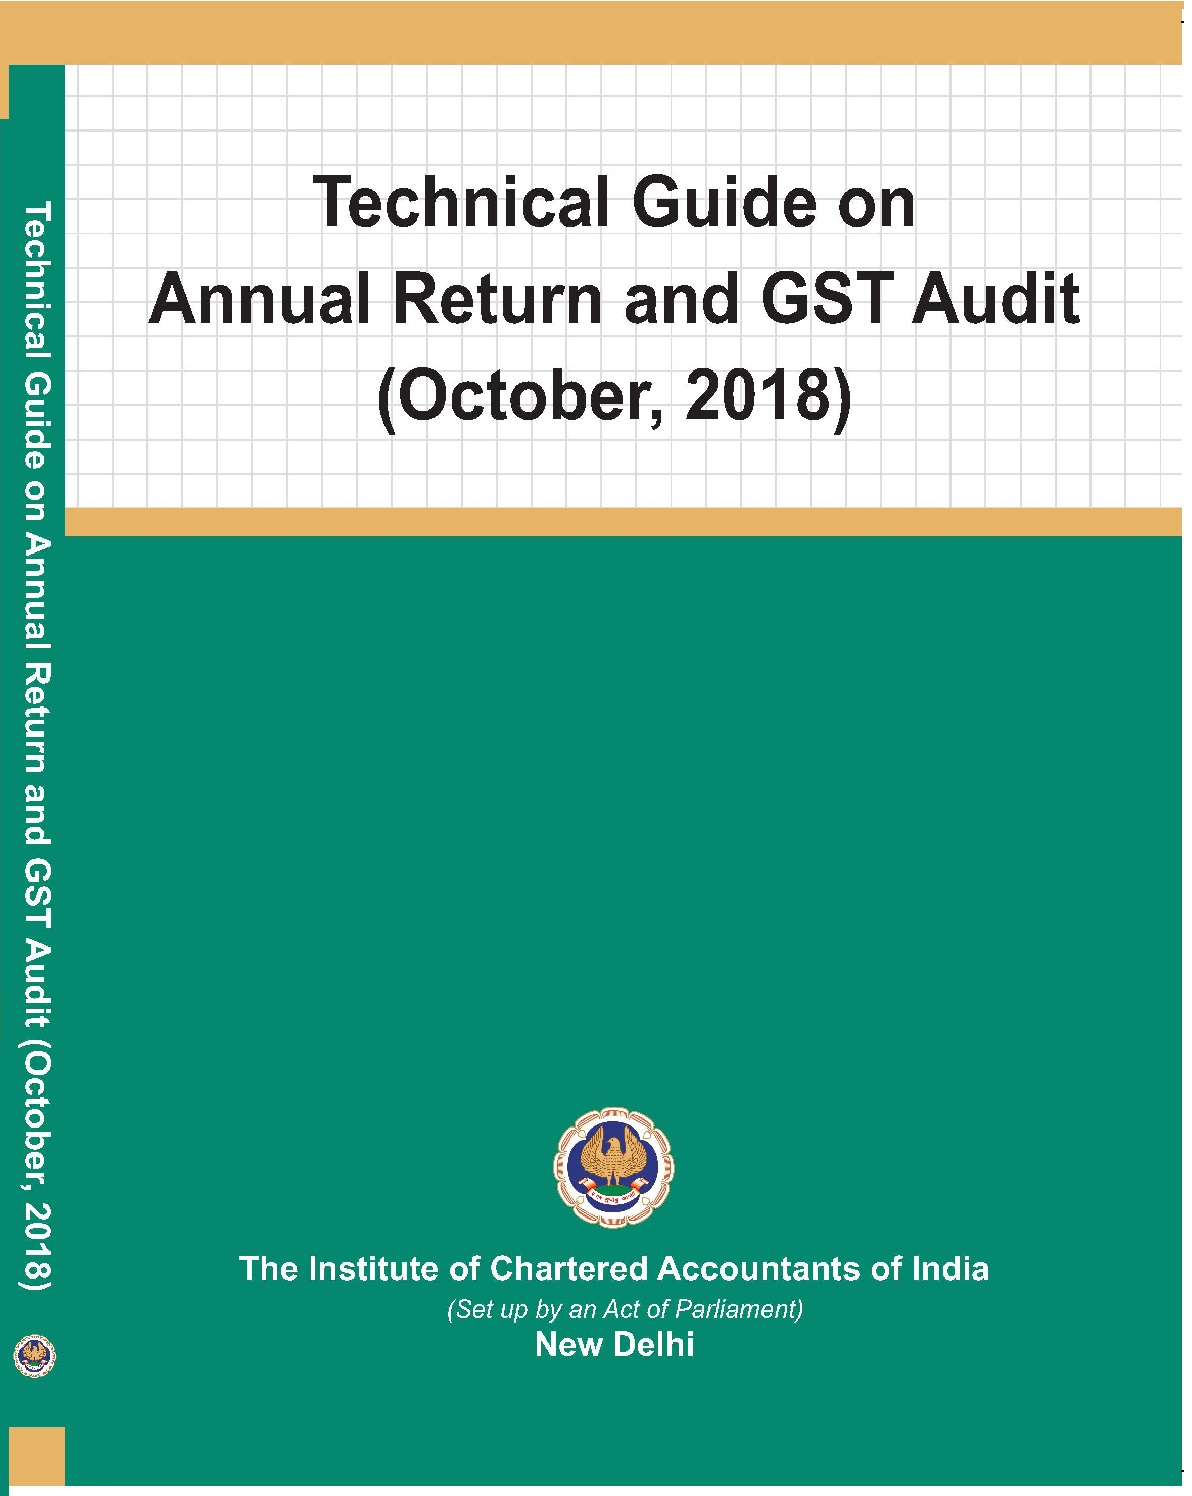 Technical Guide on Annual Return and GST Audit (October, 2018)